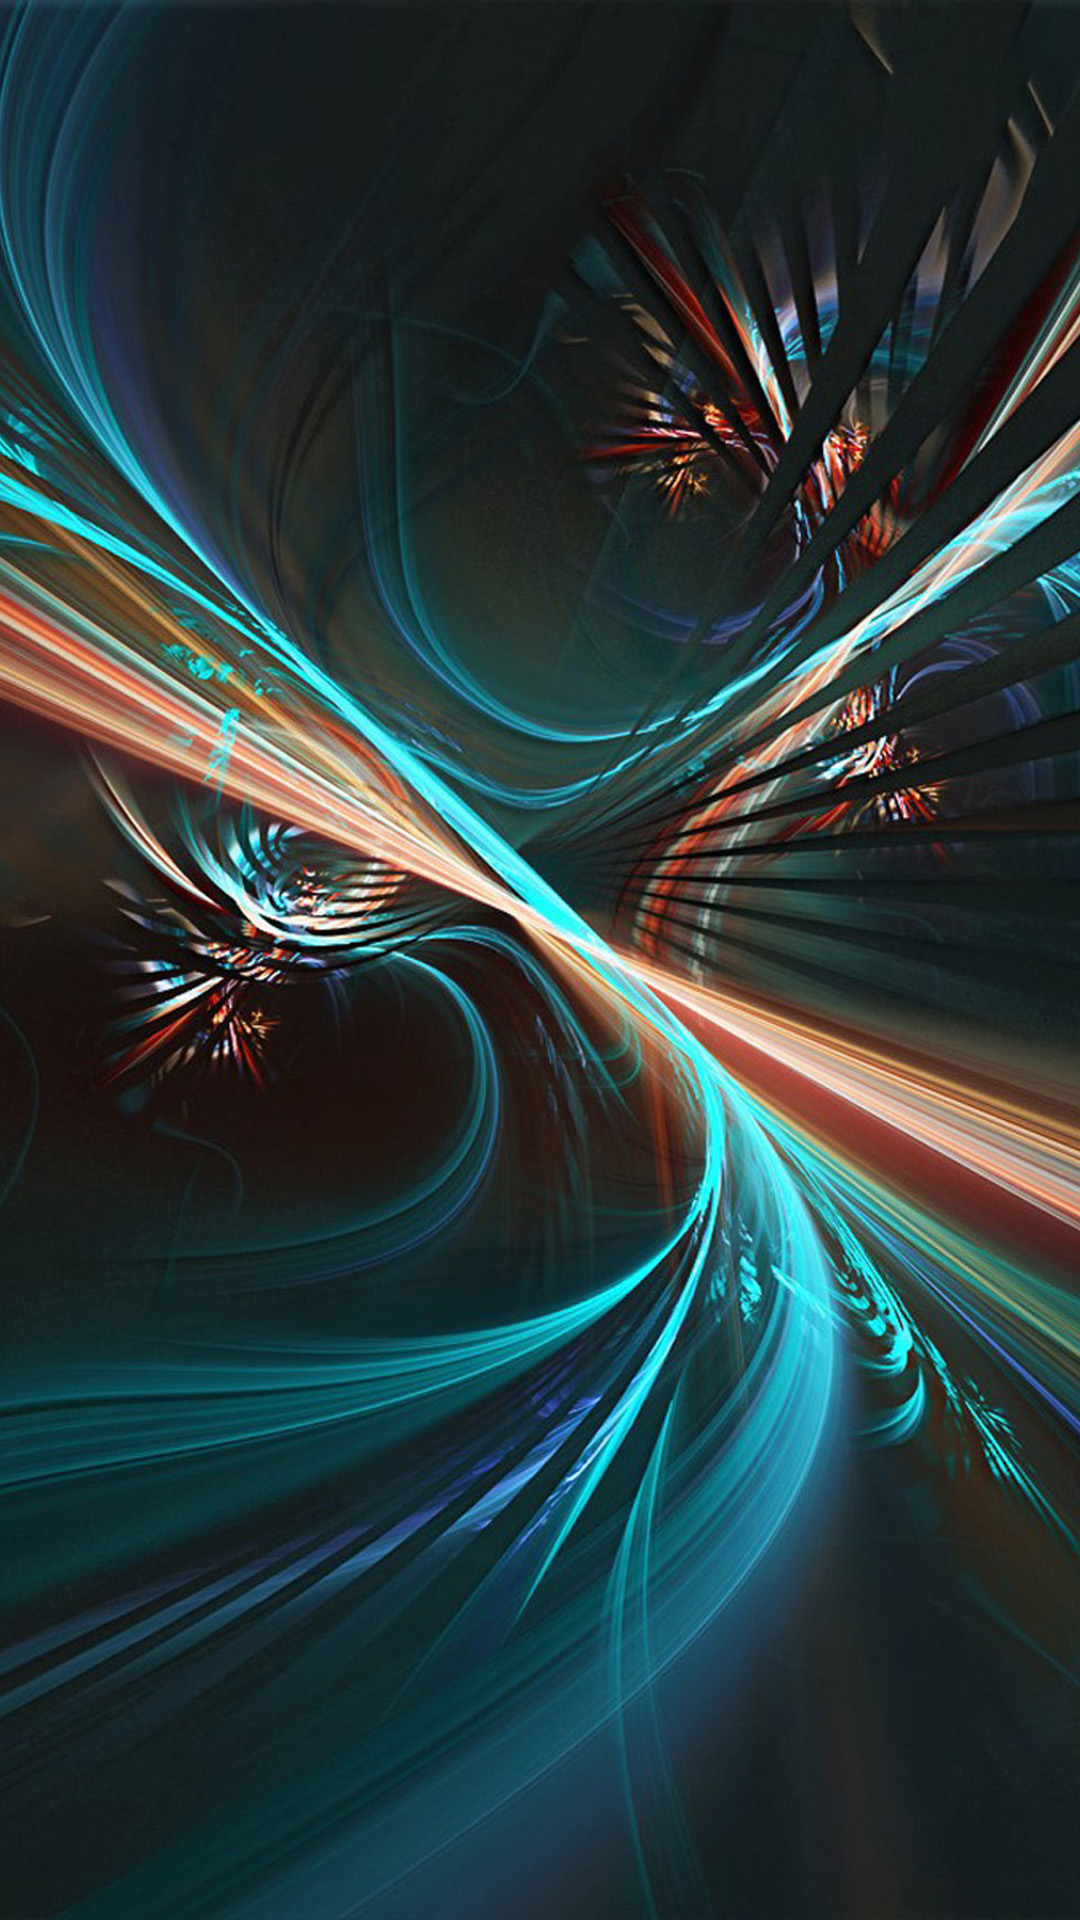 Abstract 3d 02 android wallpaper android hd wallpapers voltagebd Image collections